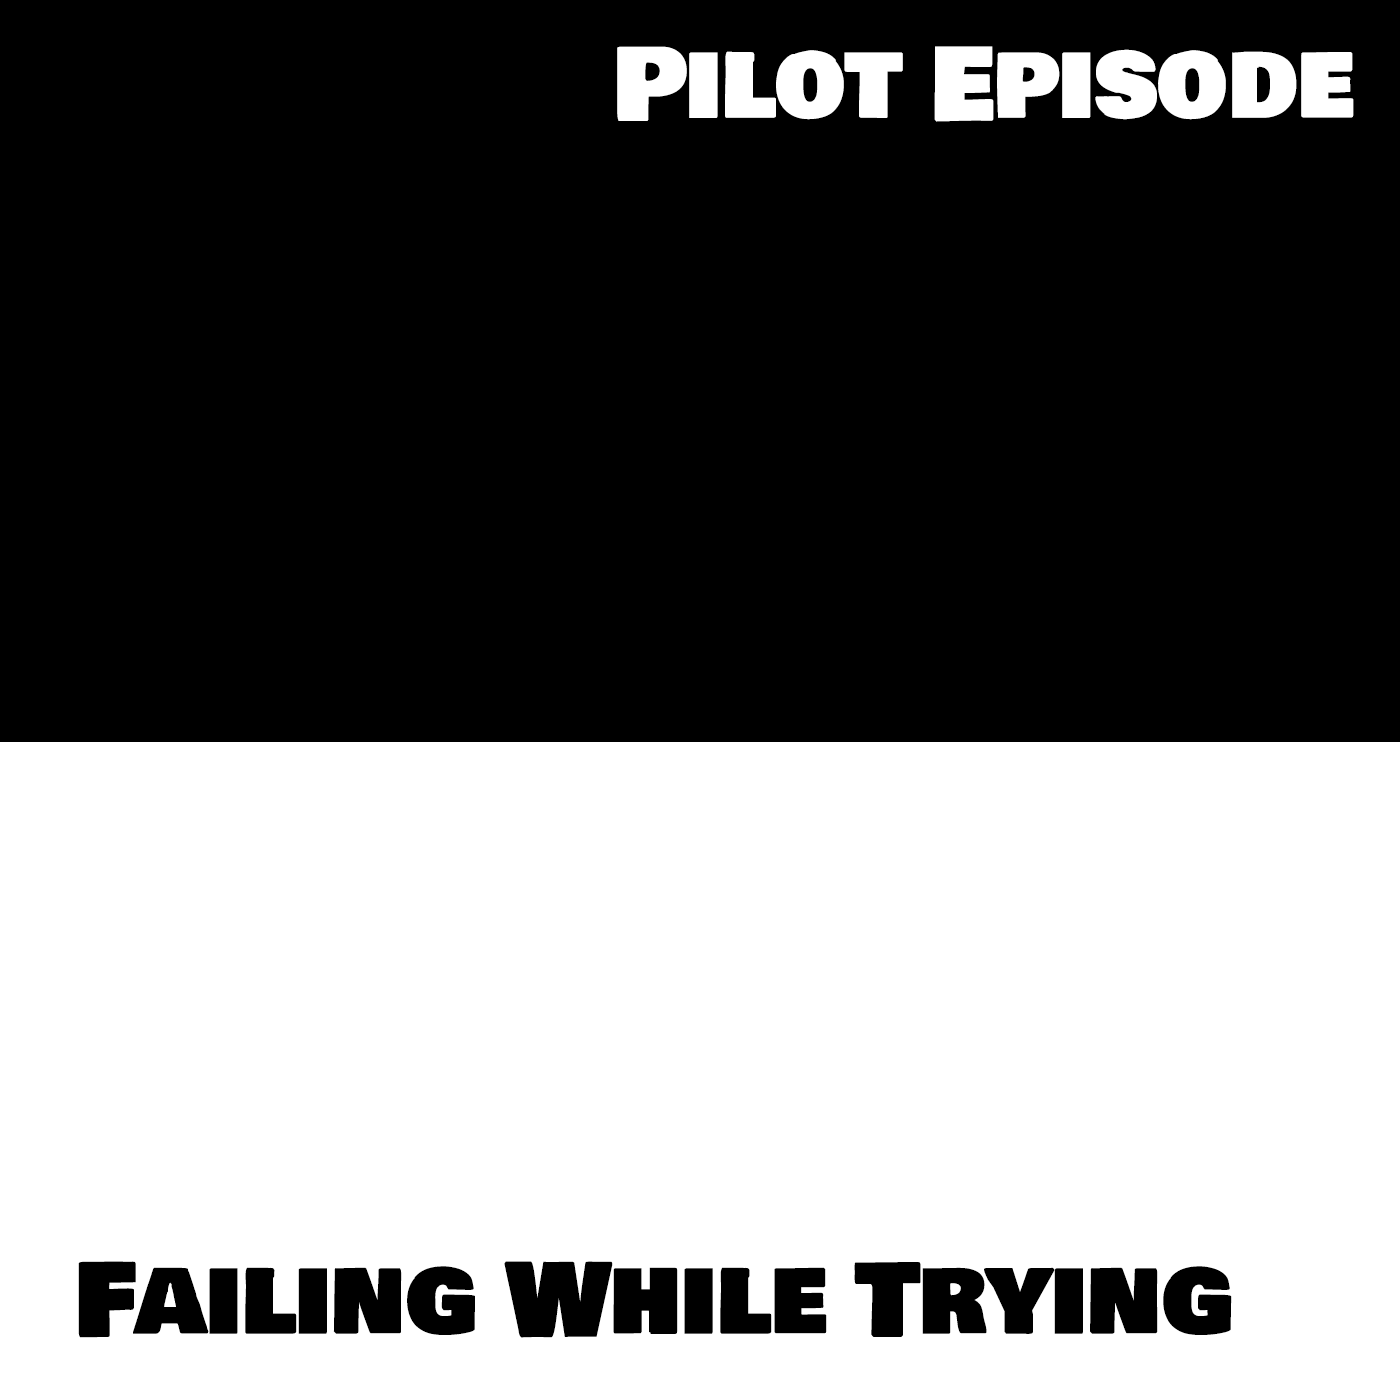 Pilot Episode: Failing While Trying